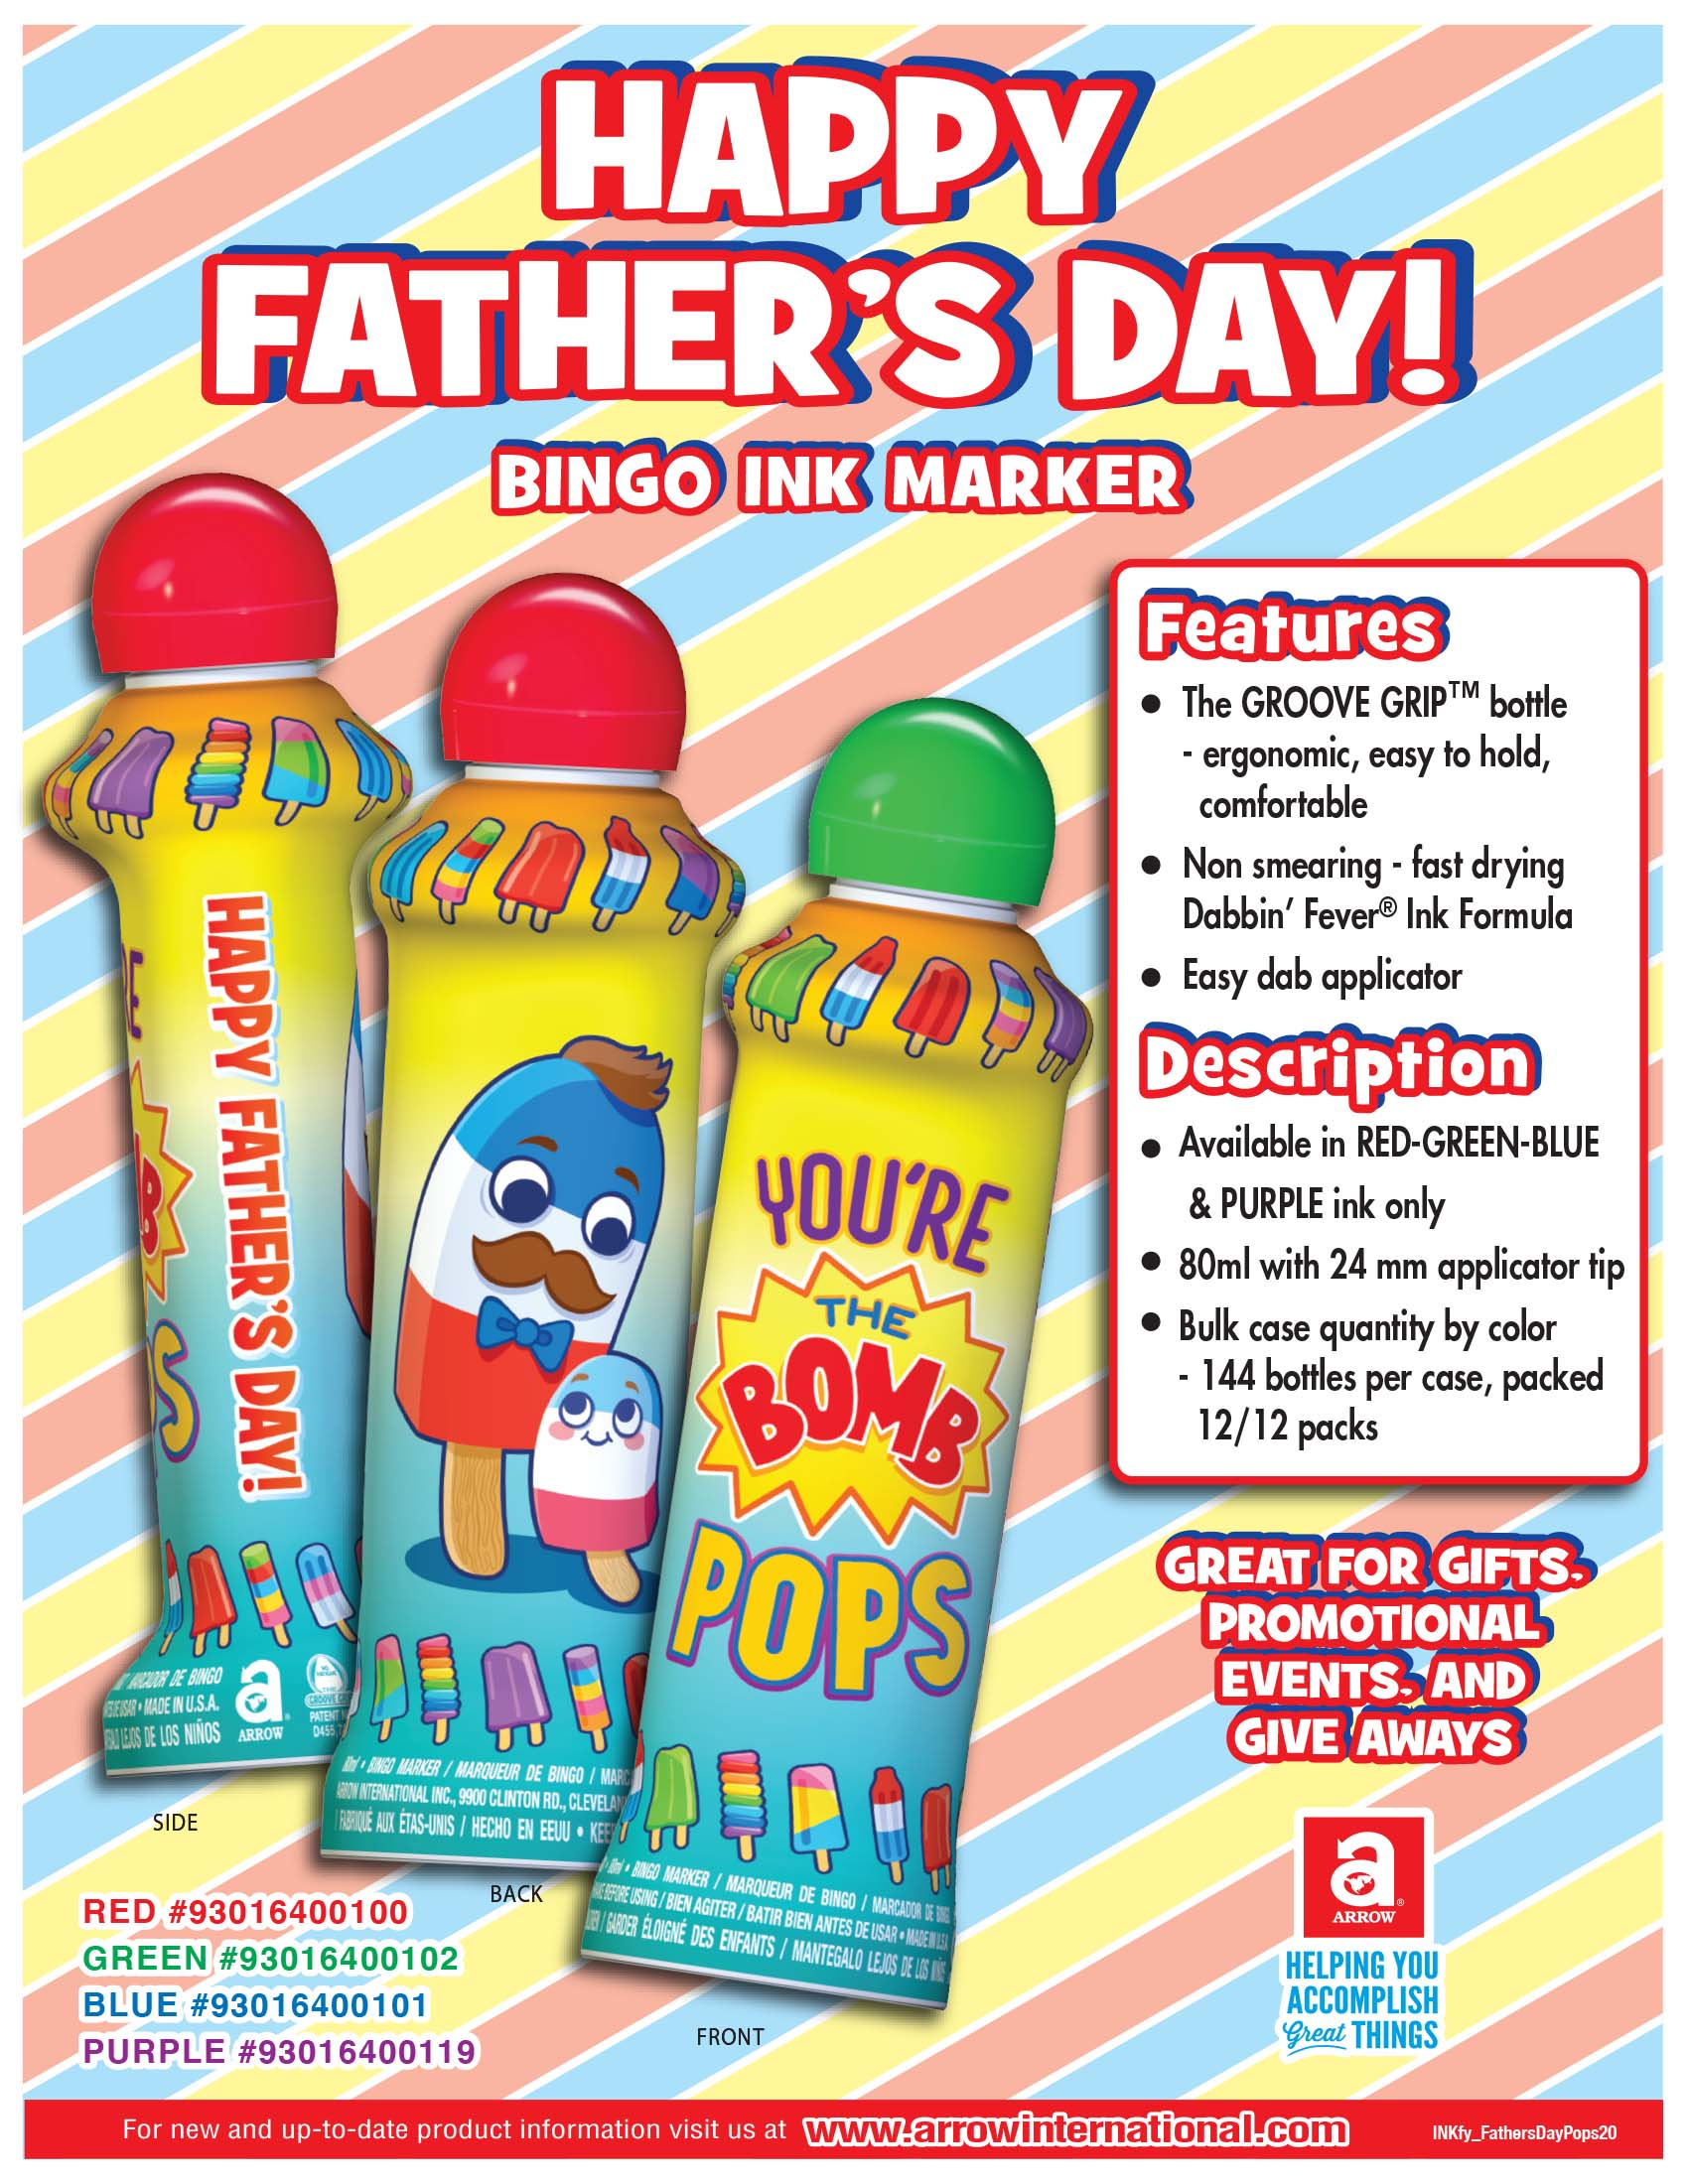 Happy Father's Day - Bomb Pops Flyer